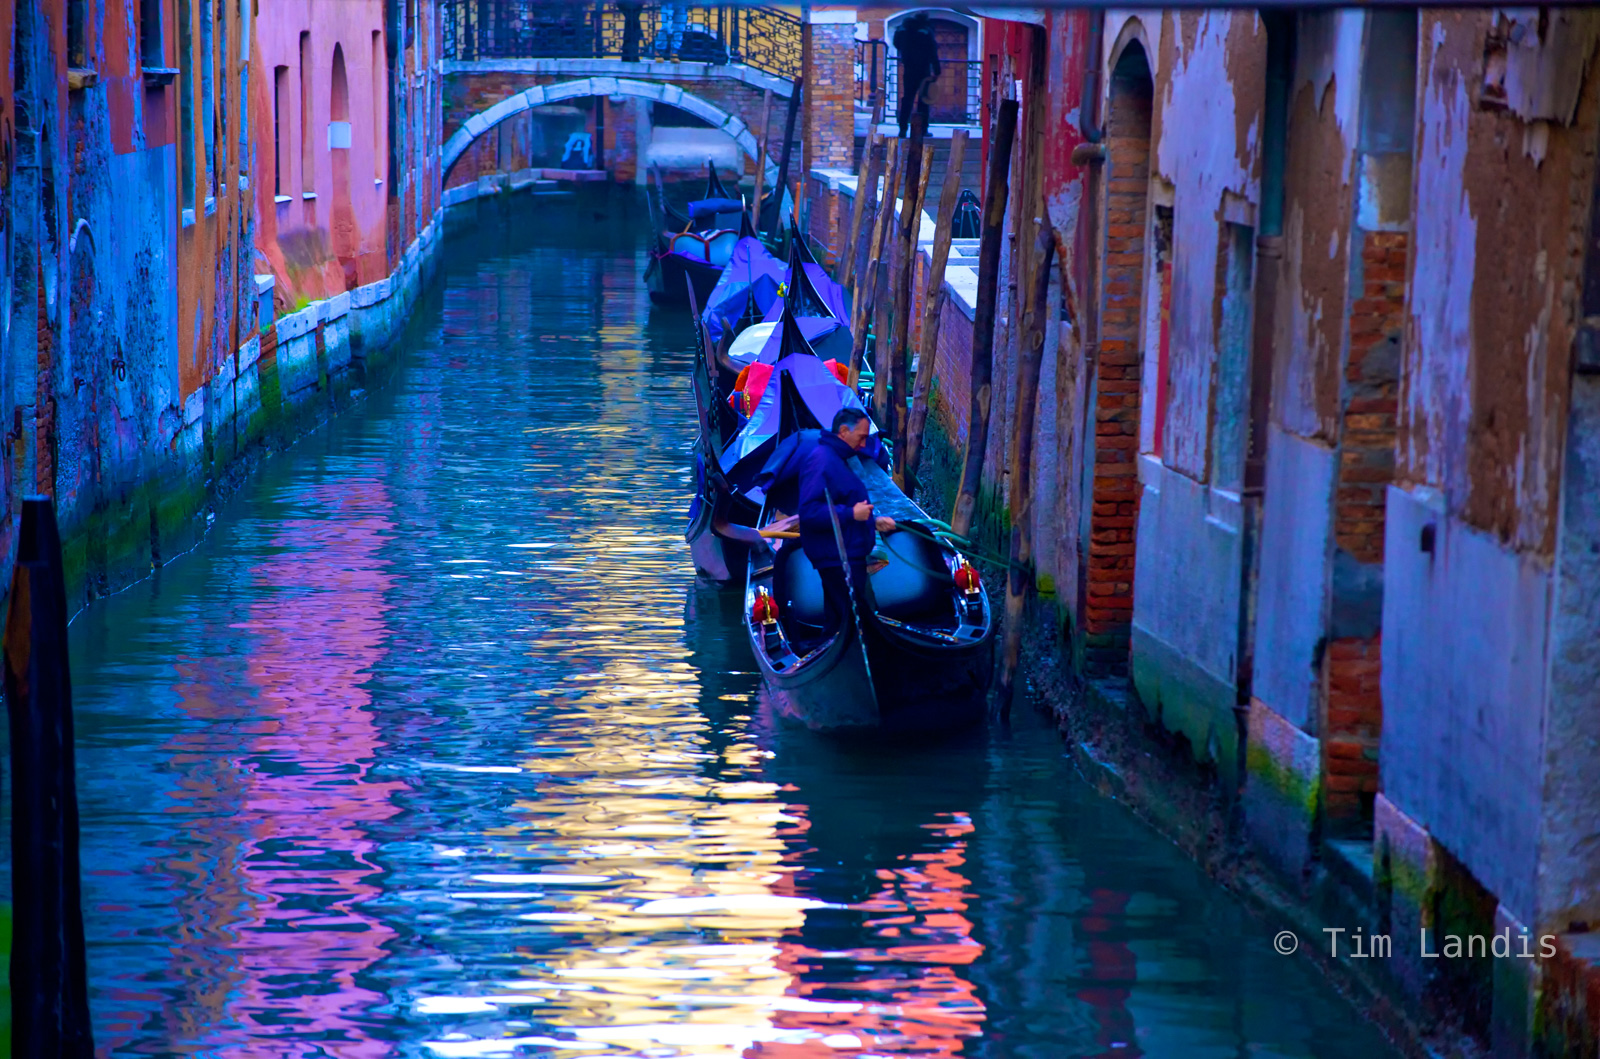 After a busy day, a gondolier parks his gondola